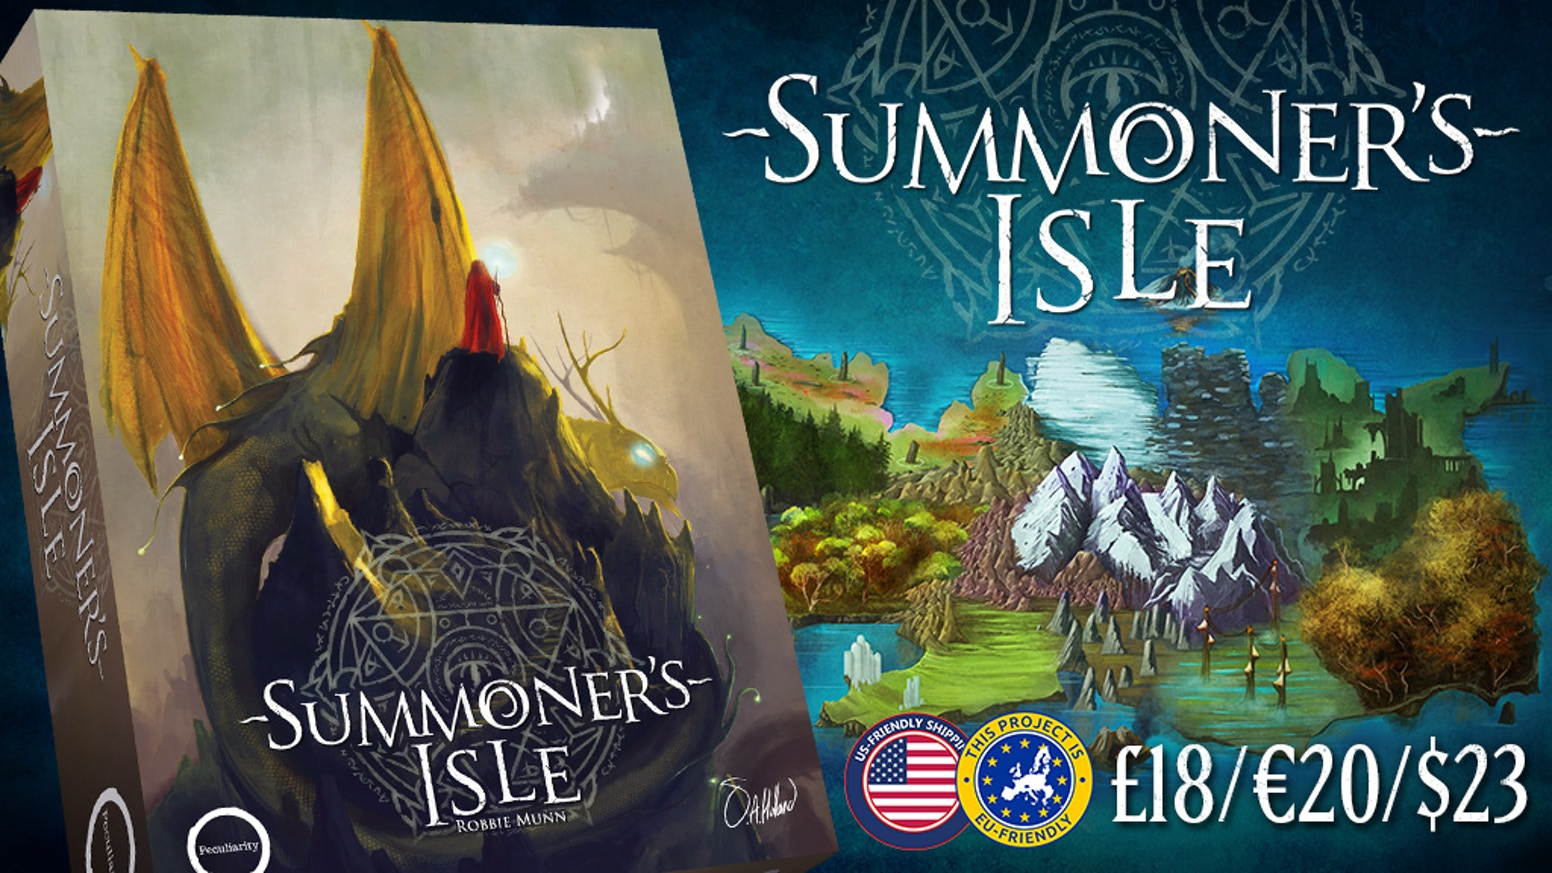 A contest of strategy, area control, resource management and cunning. Do you have what it takes to be a Summoner?